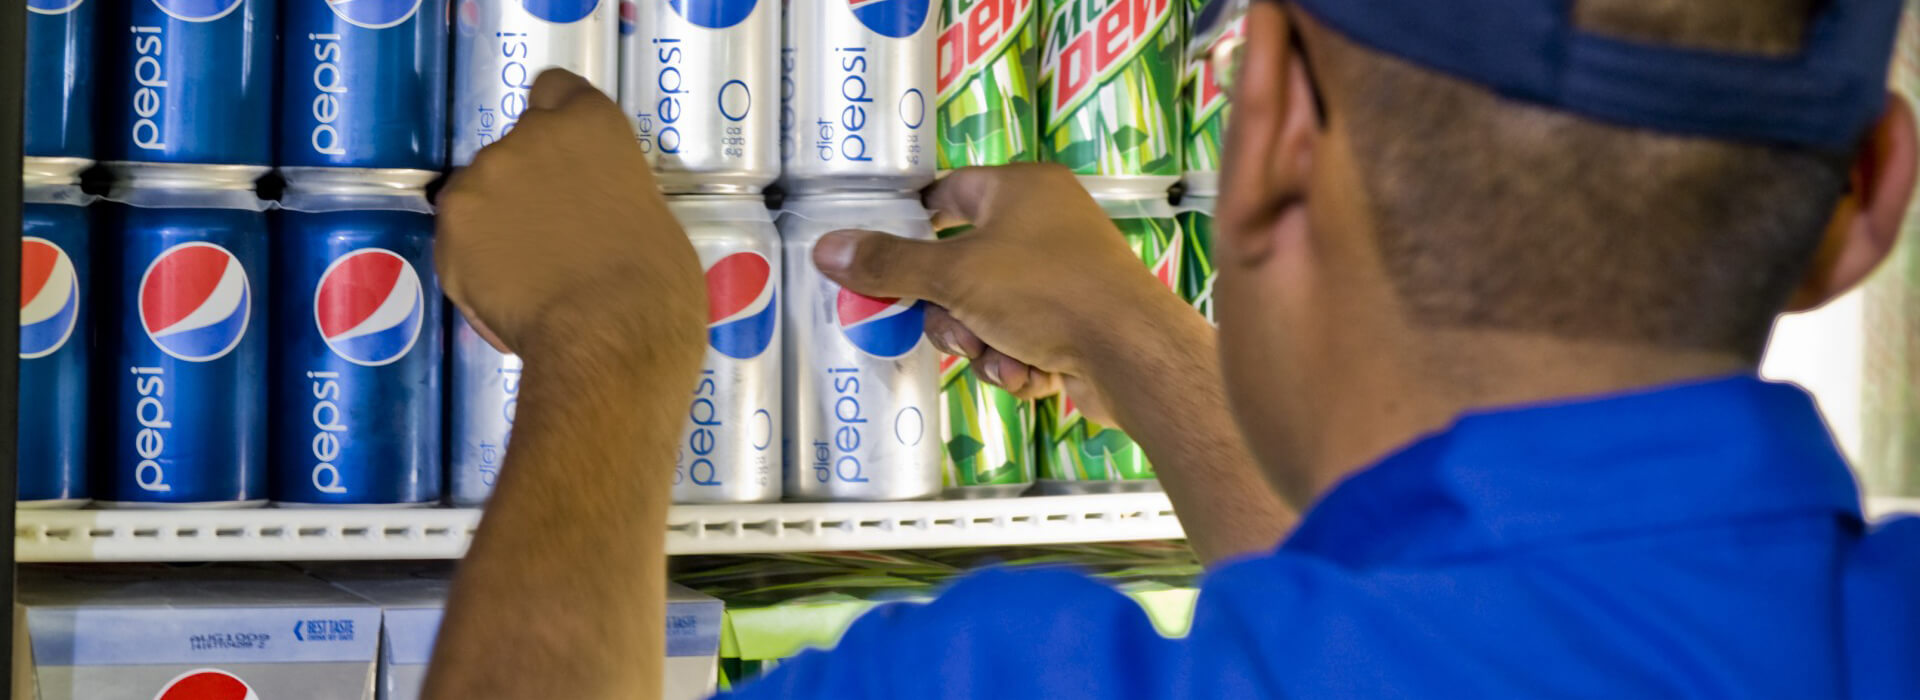 Worker loading cans of Pepsi into a refrigerator.